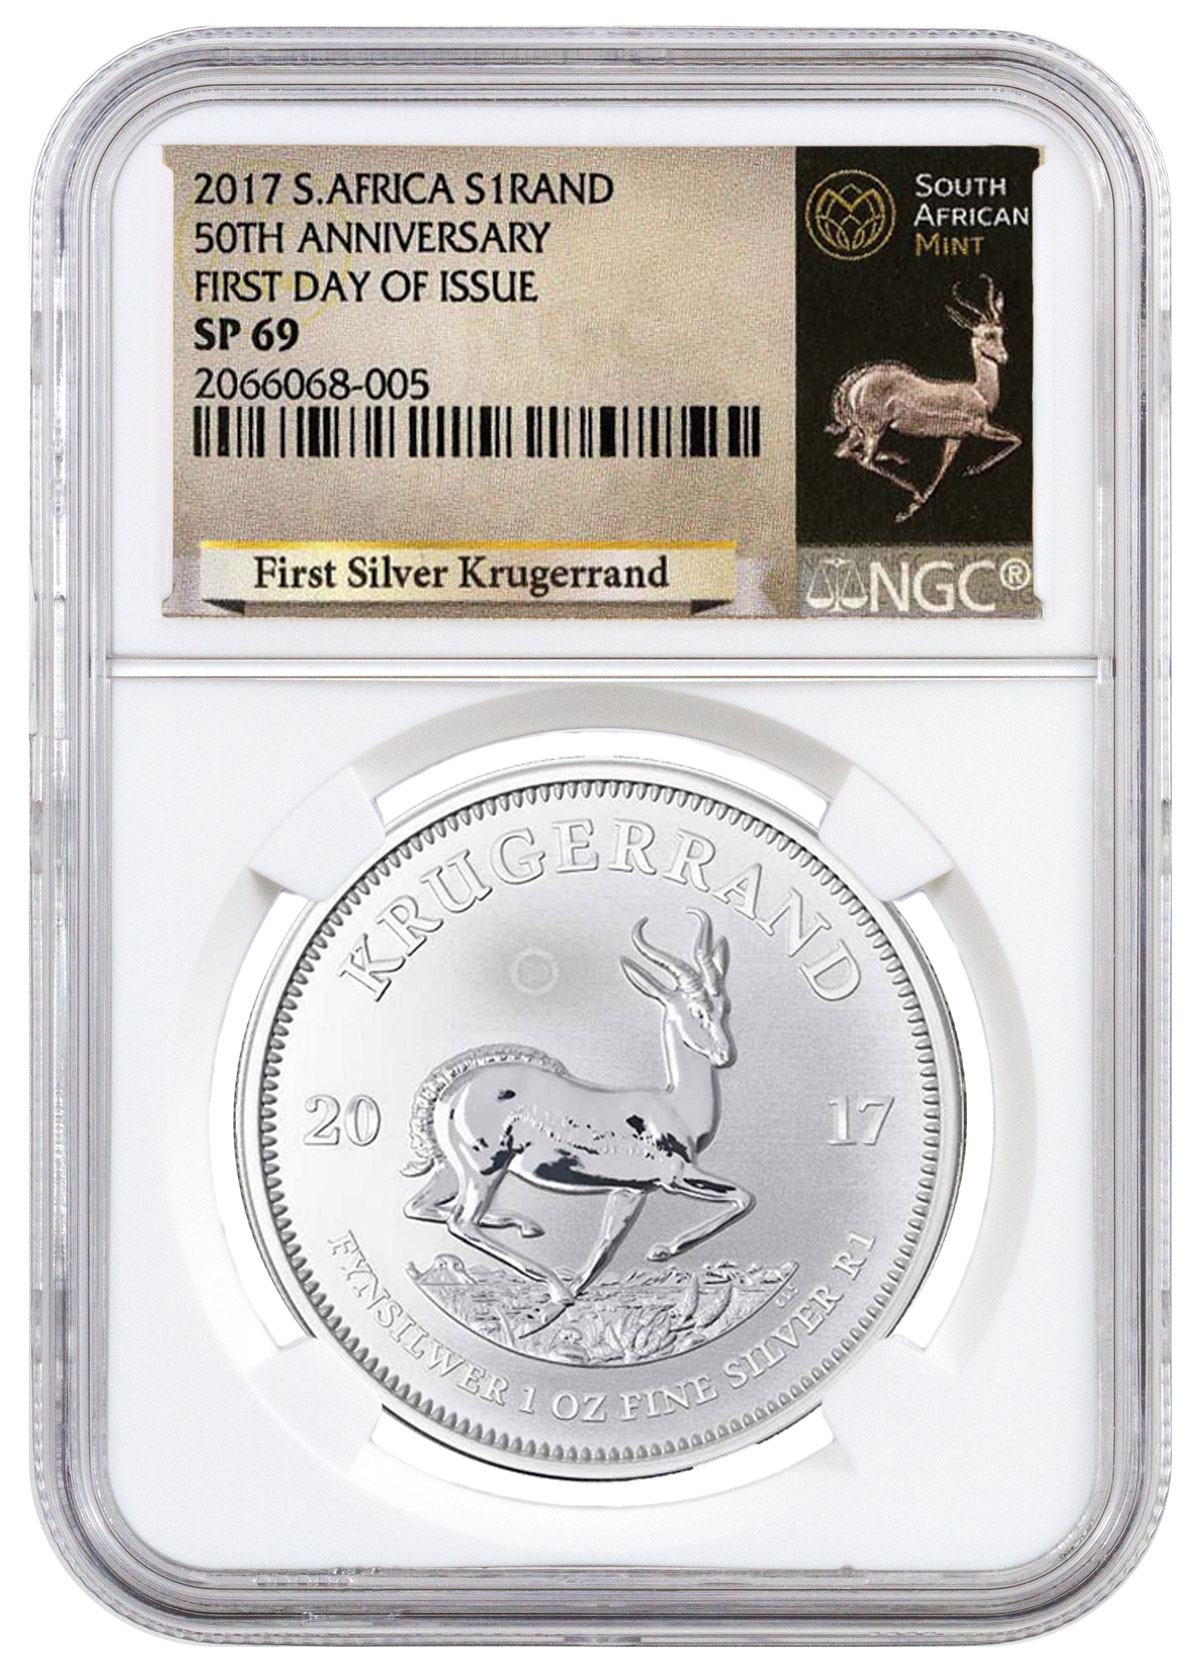 2017 South Africa 1 oz Silver Krugerrand Premium Uncirculated Coin NGC SP69 FDI (Exclusive Krugerrand Label)